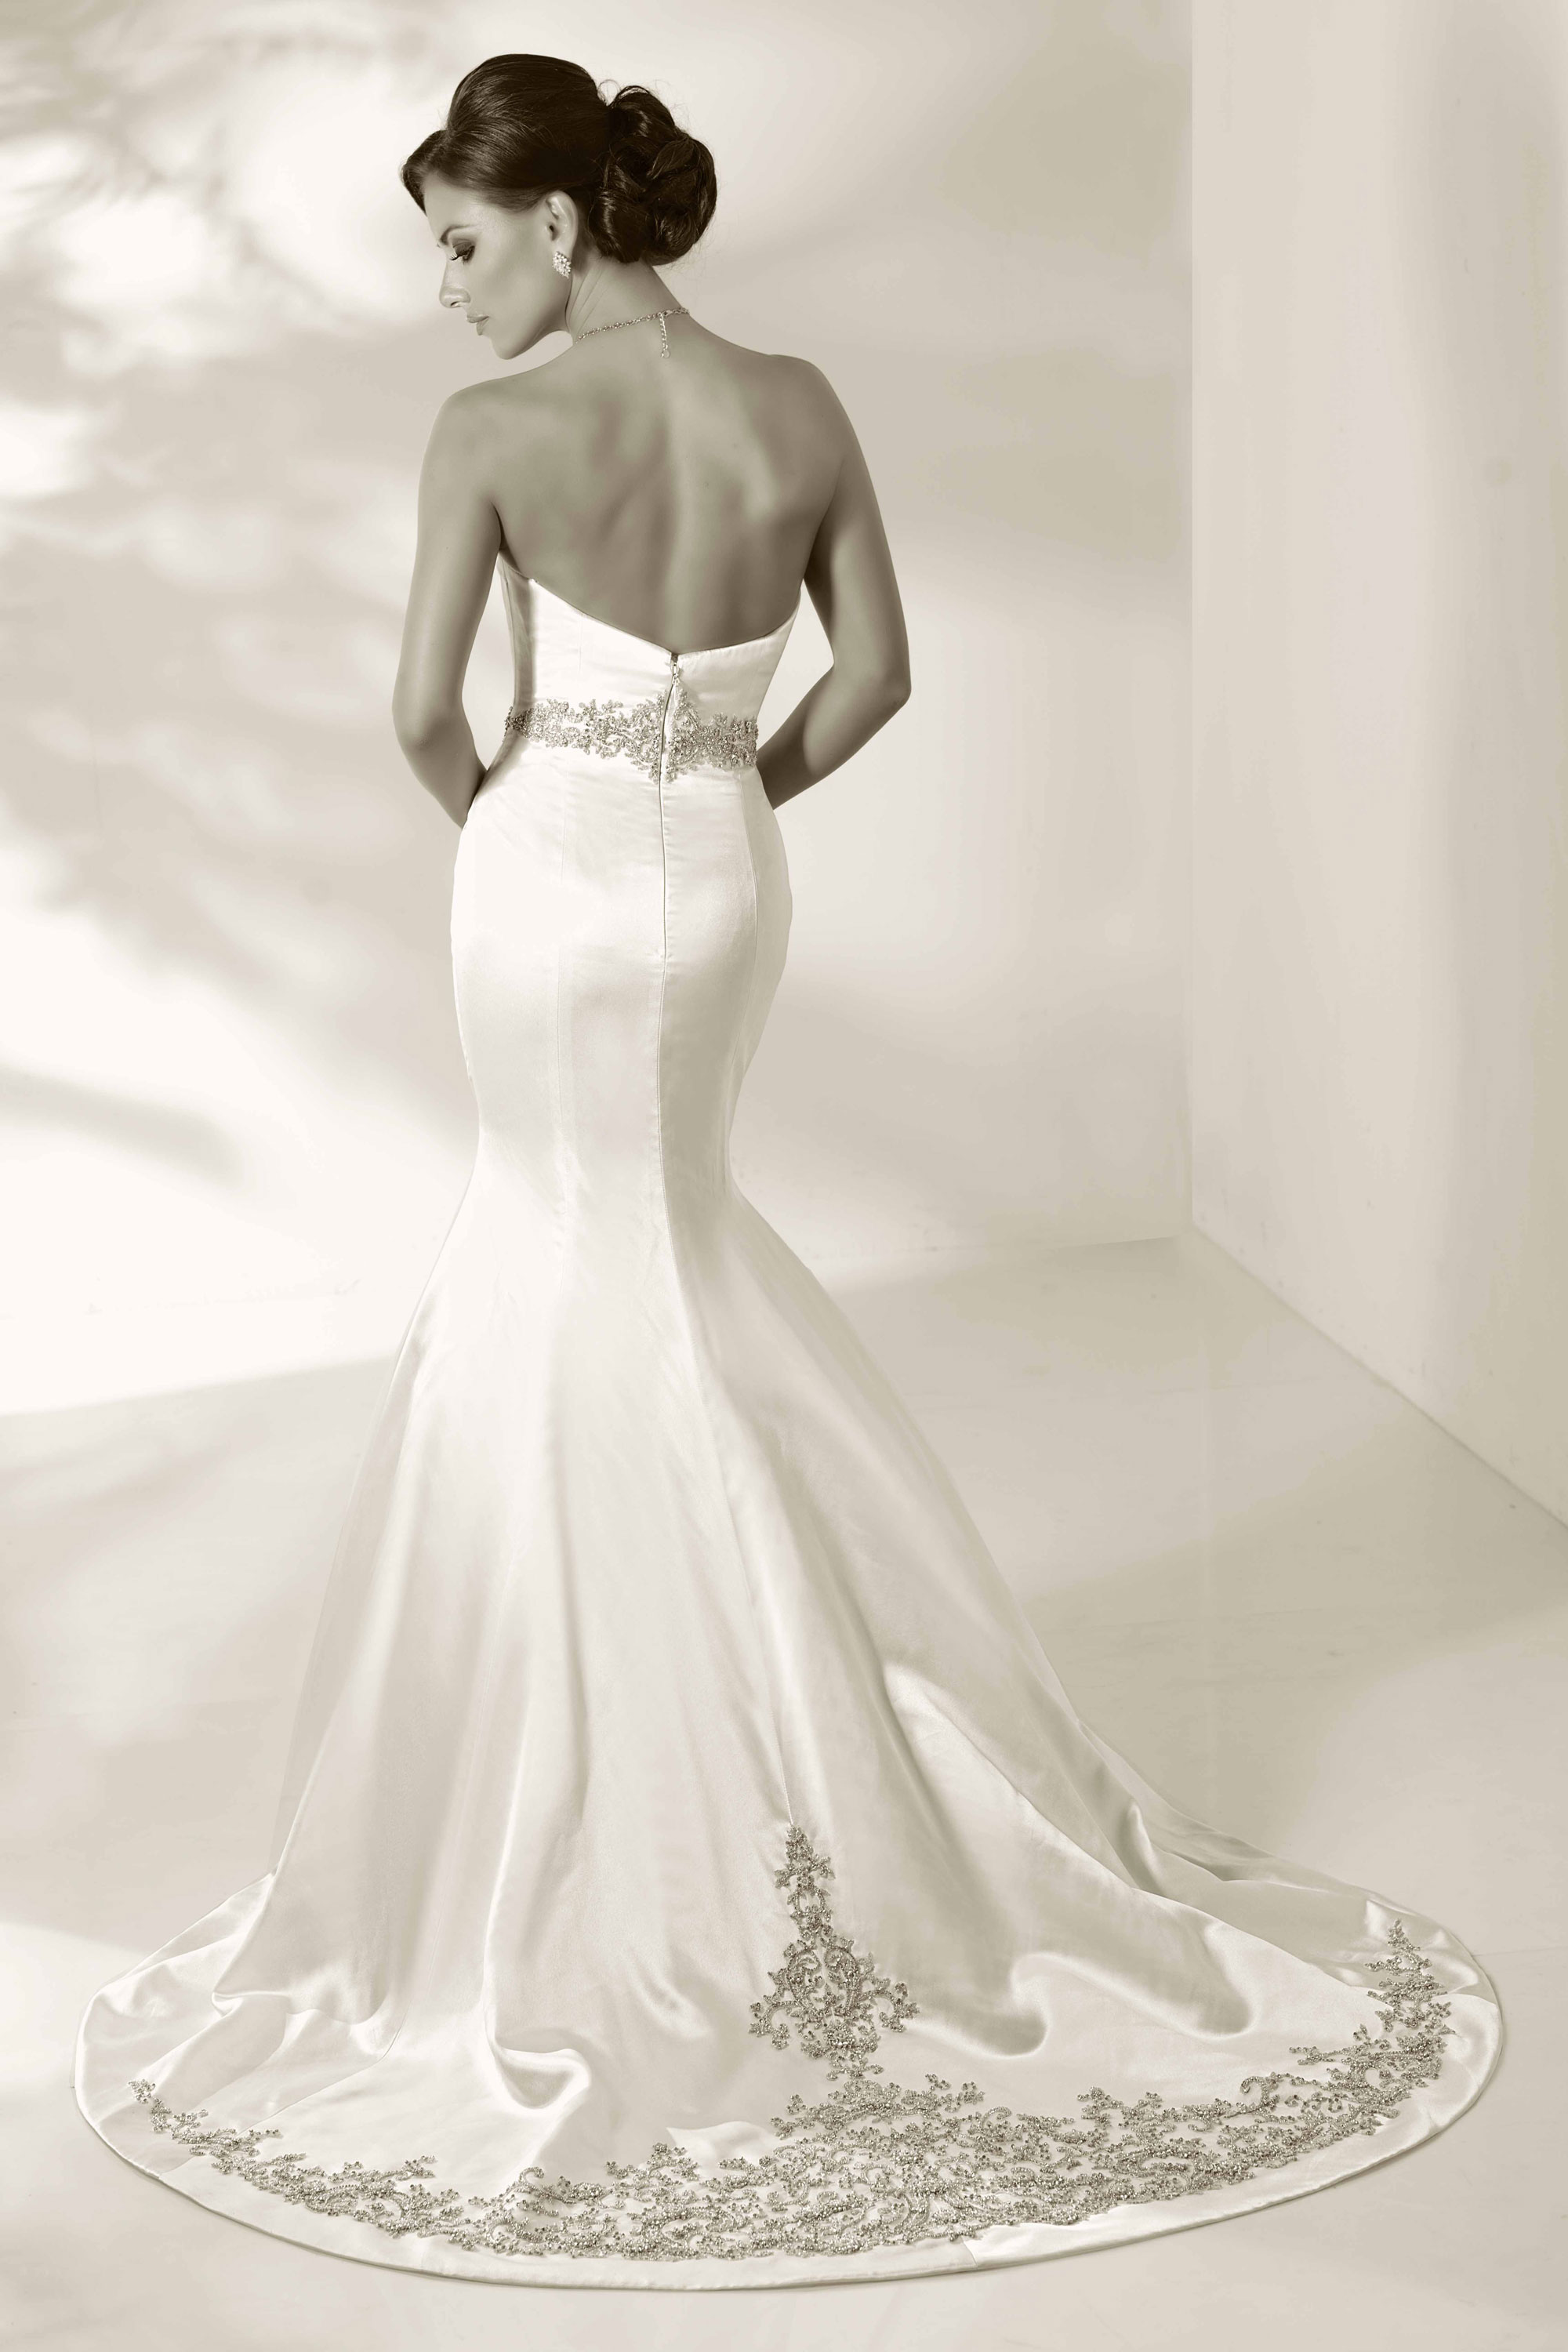 cristiano-lucci-wedding-dresses-13-01052014